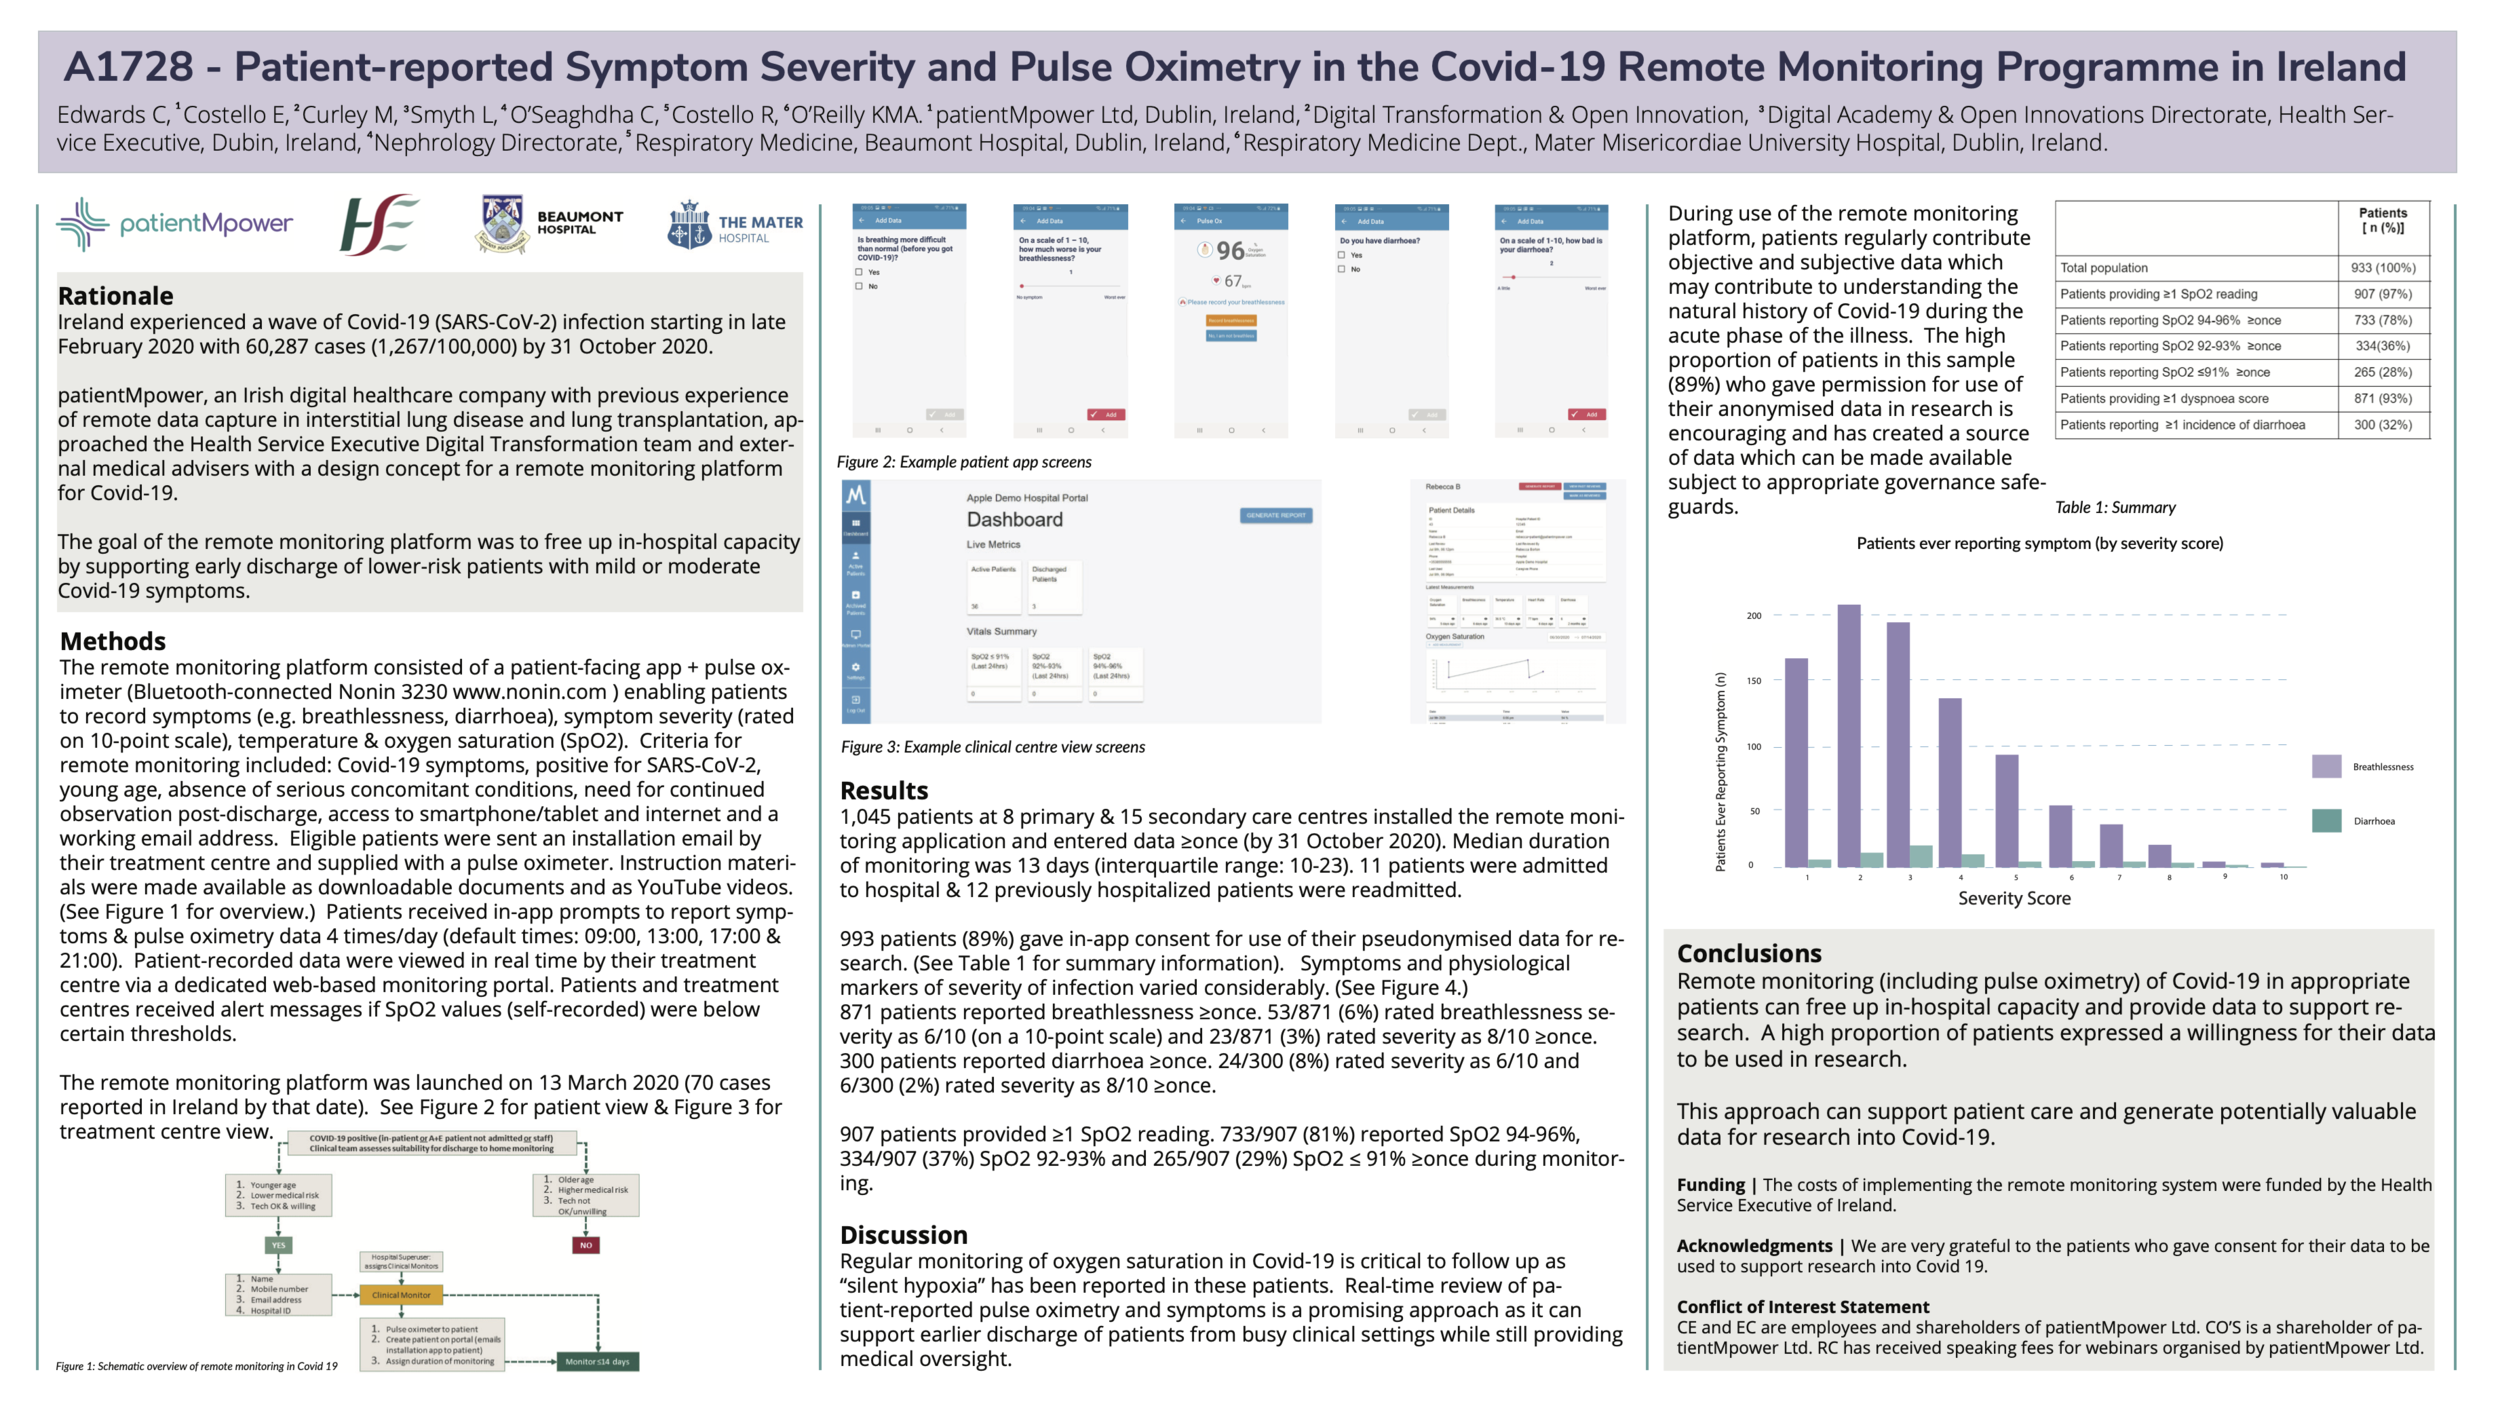 A1728 - Patient-reported Symptom Severity and Pulse Oximetry in the Covid-19 Remote Monitoring Programme in Ireland